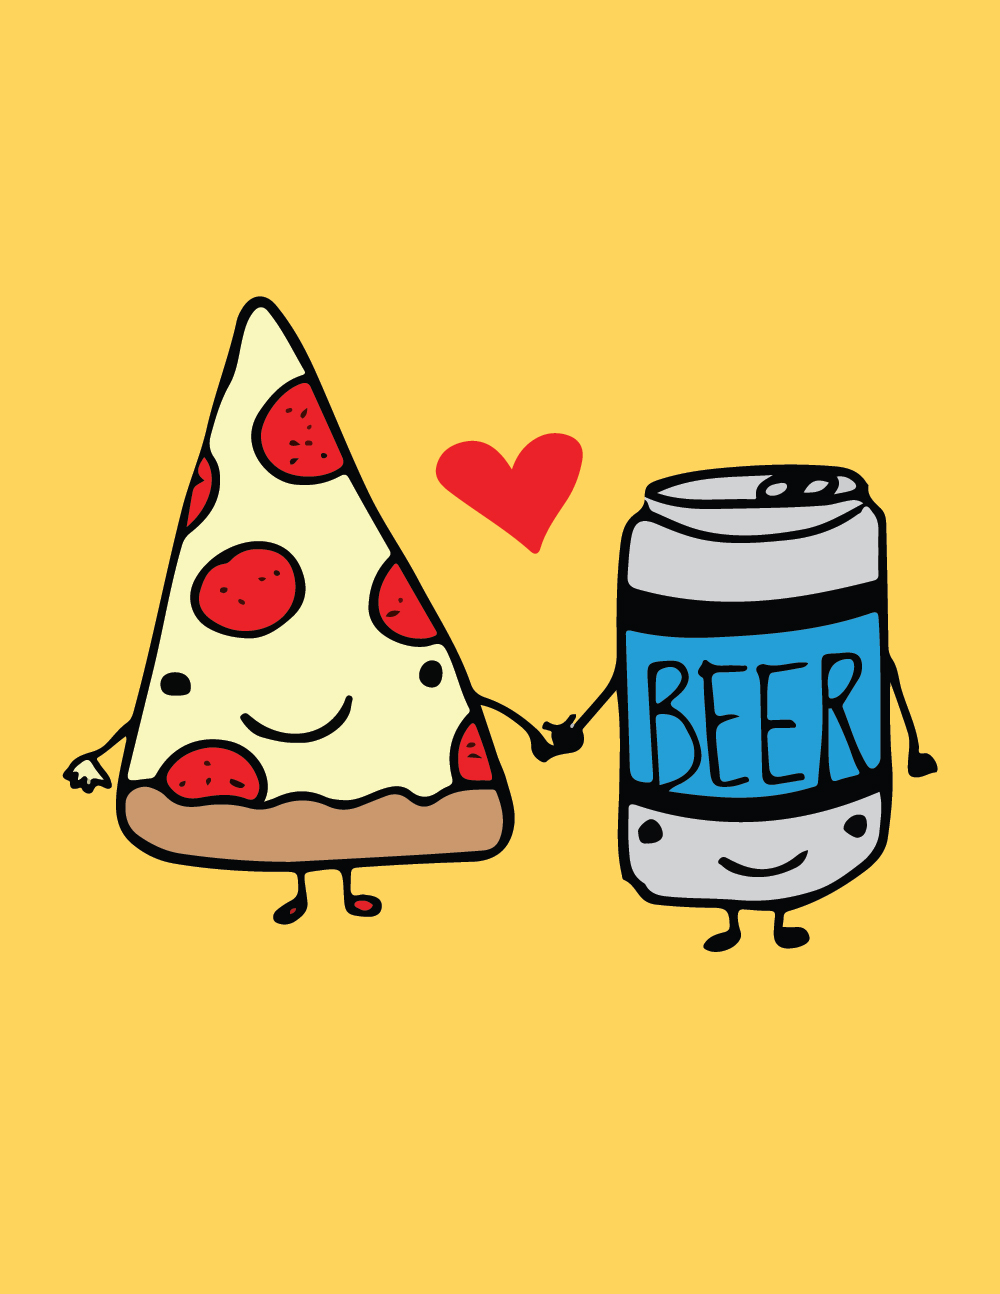 pizza_beer.jpg